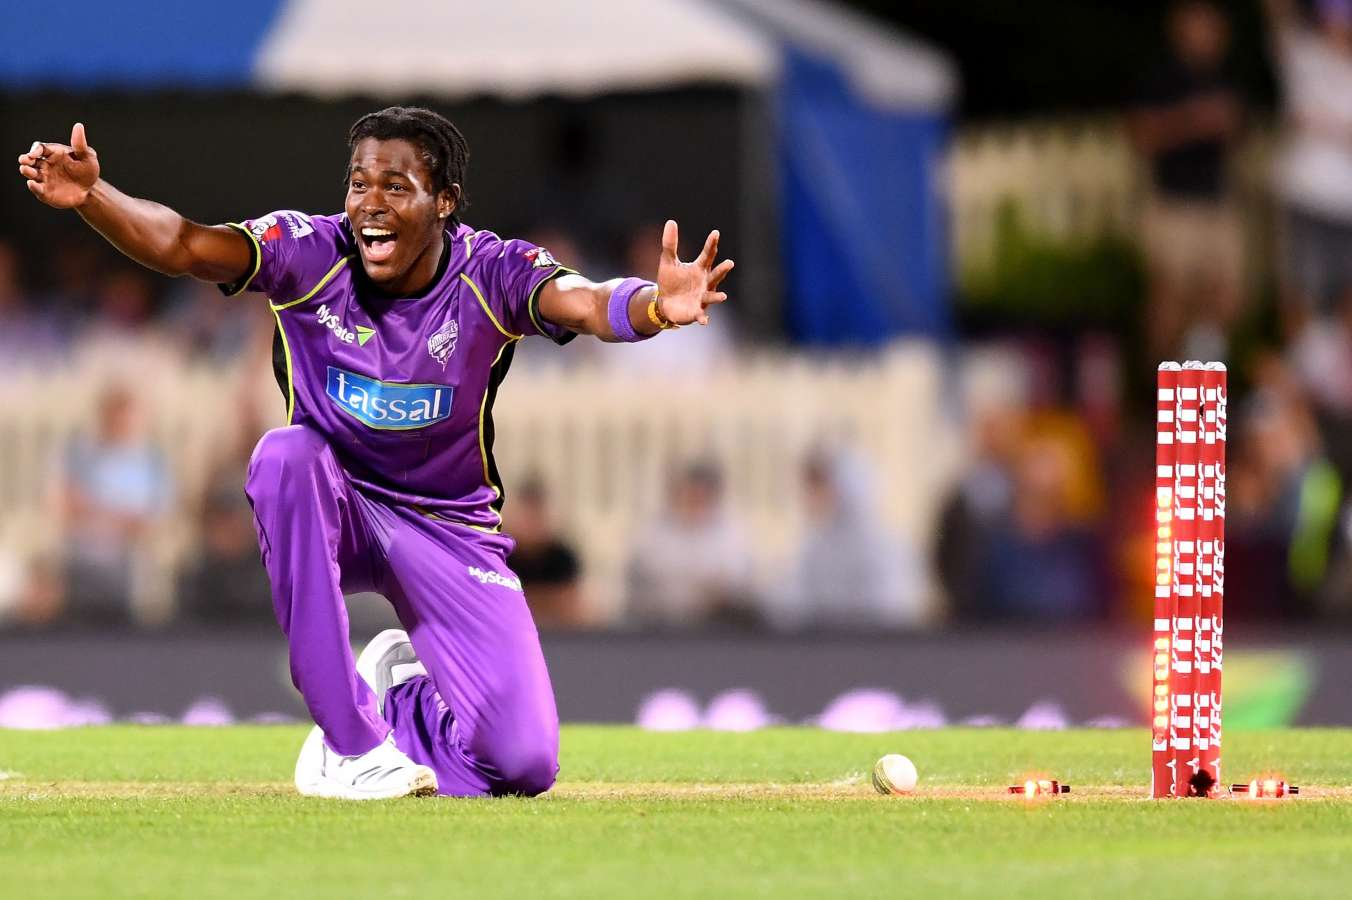 BBL Preview: Brisbane Heat vs Hobart Hurricanes